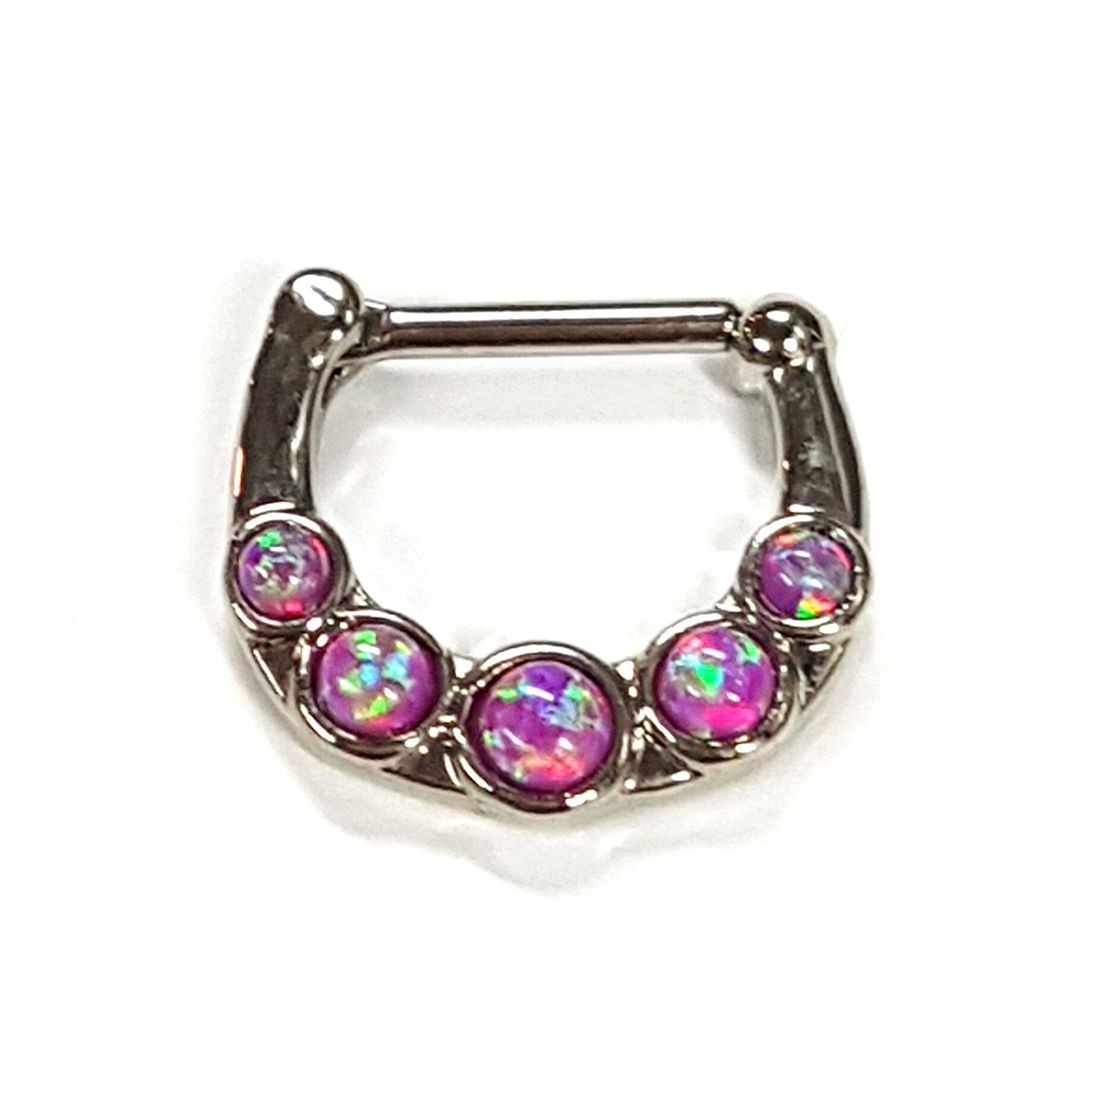 1.2 5 Stone Pink Opal titanium septum clicker available at Kazbah online and our Leicester City Centre Shop